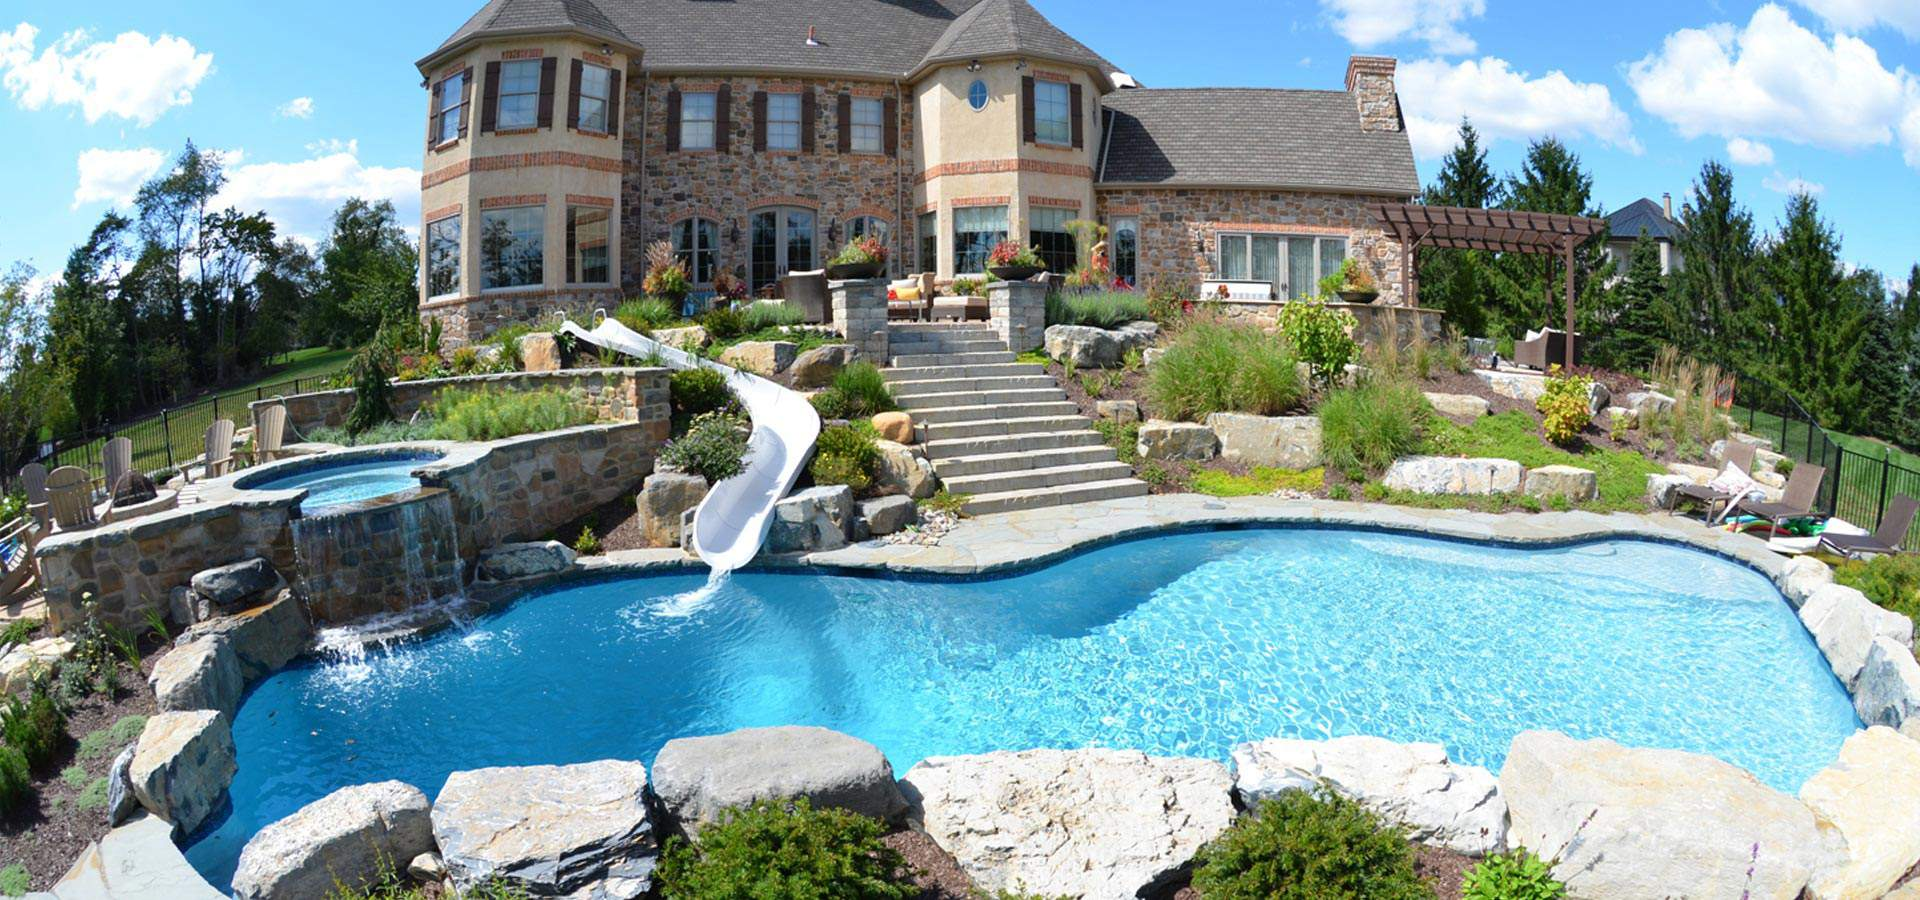 1 pool builder in lehigh valley pa best inground pools for Custom swimming pools